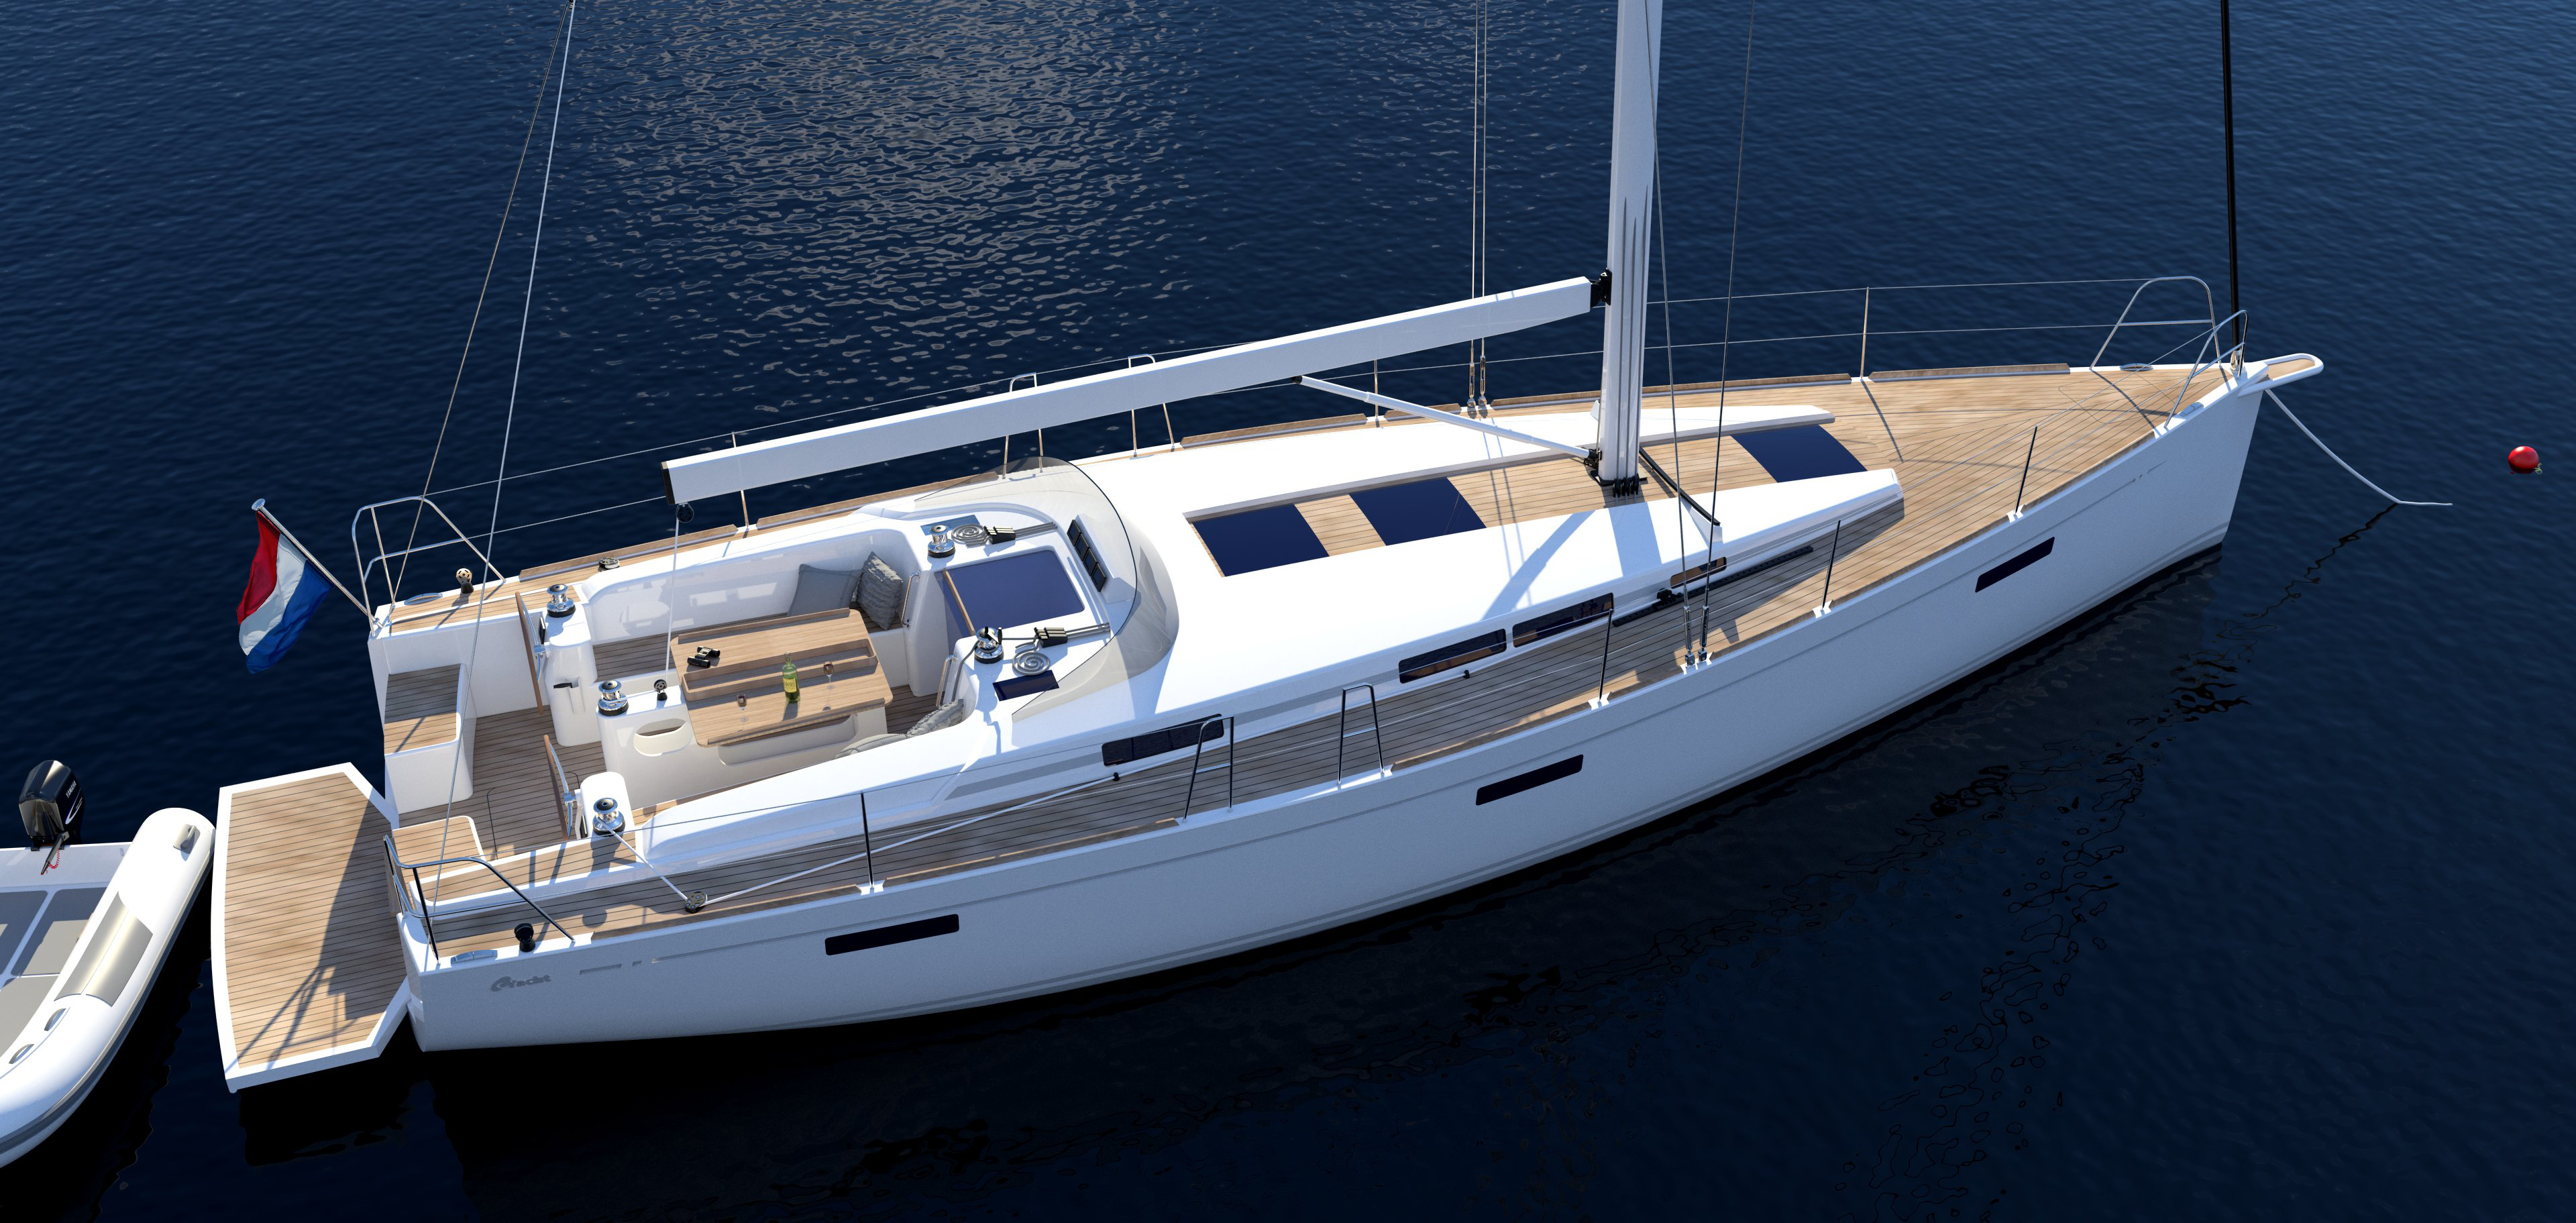 C-Yacht 42-47 deck layout